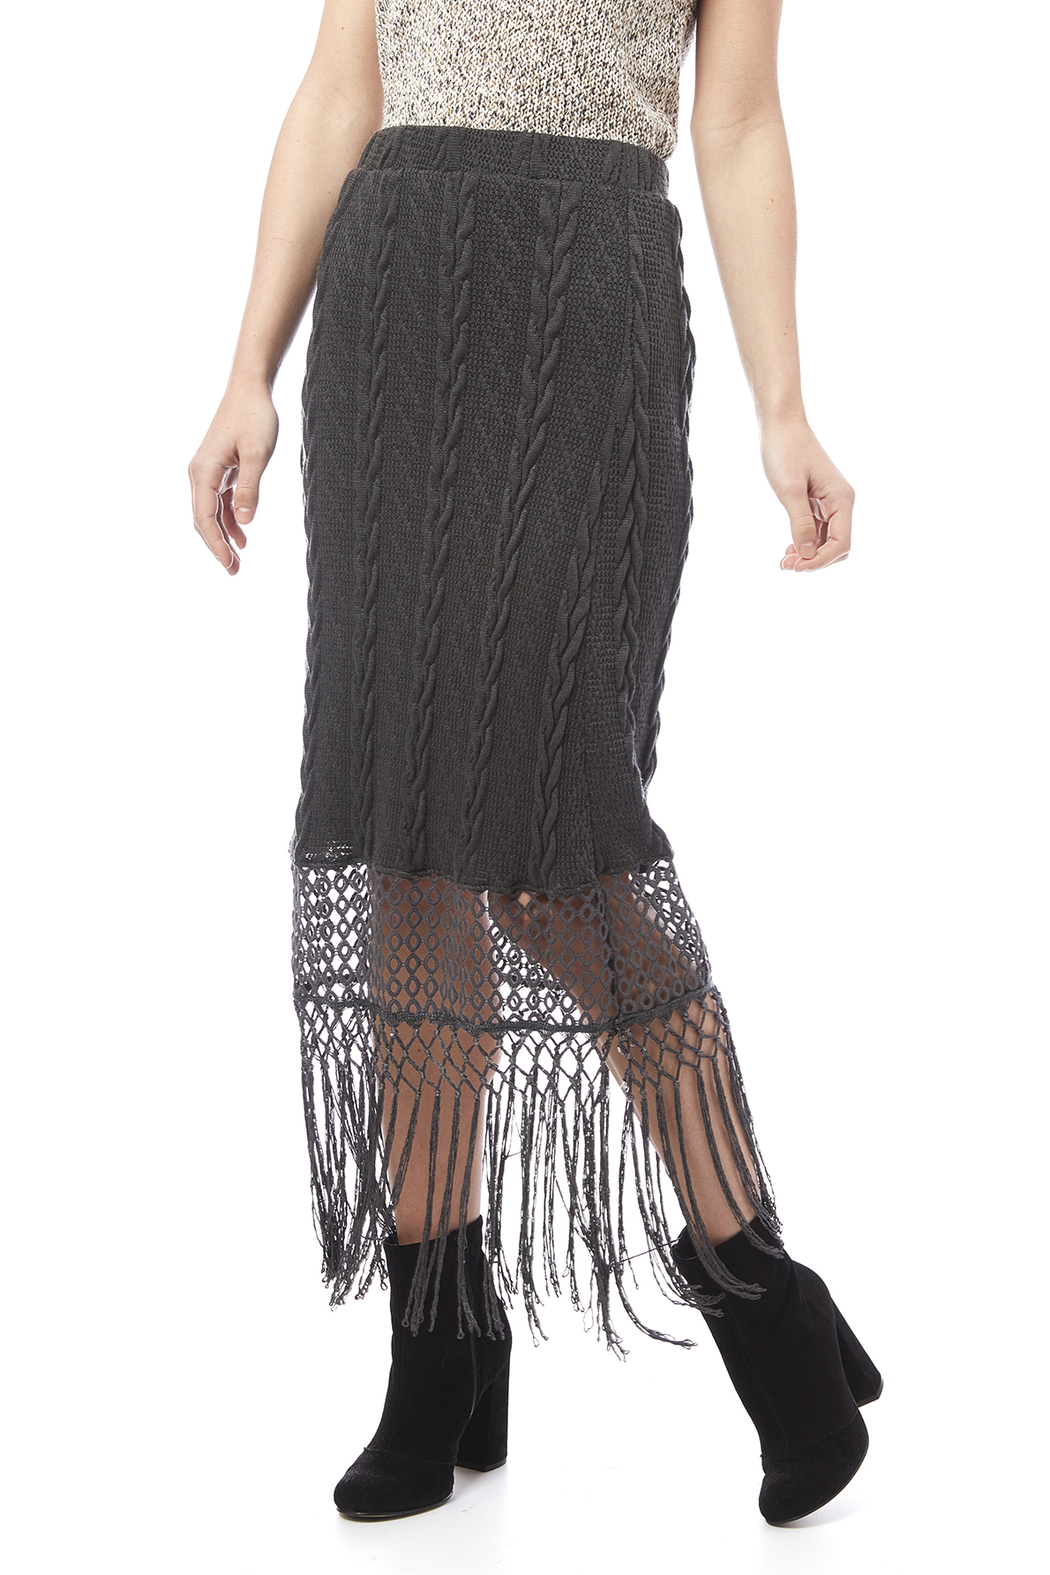 anama fringe maxi skirt from chicago by donna